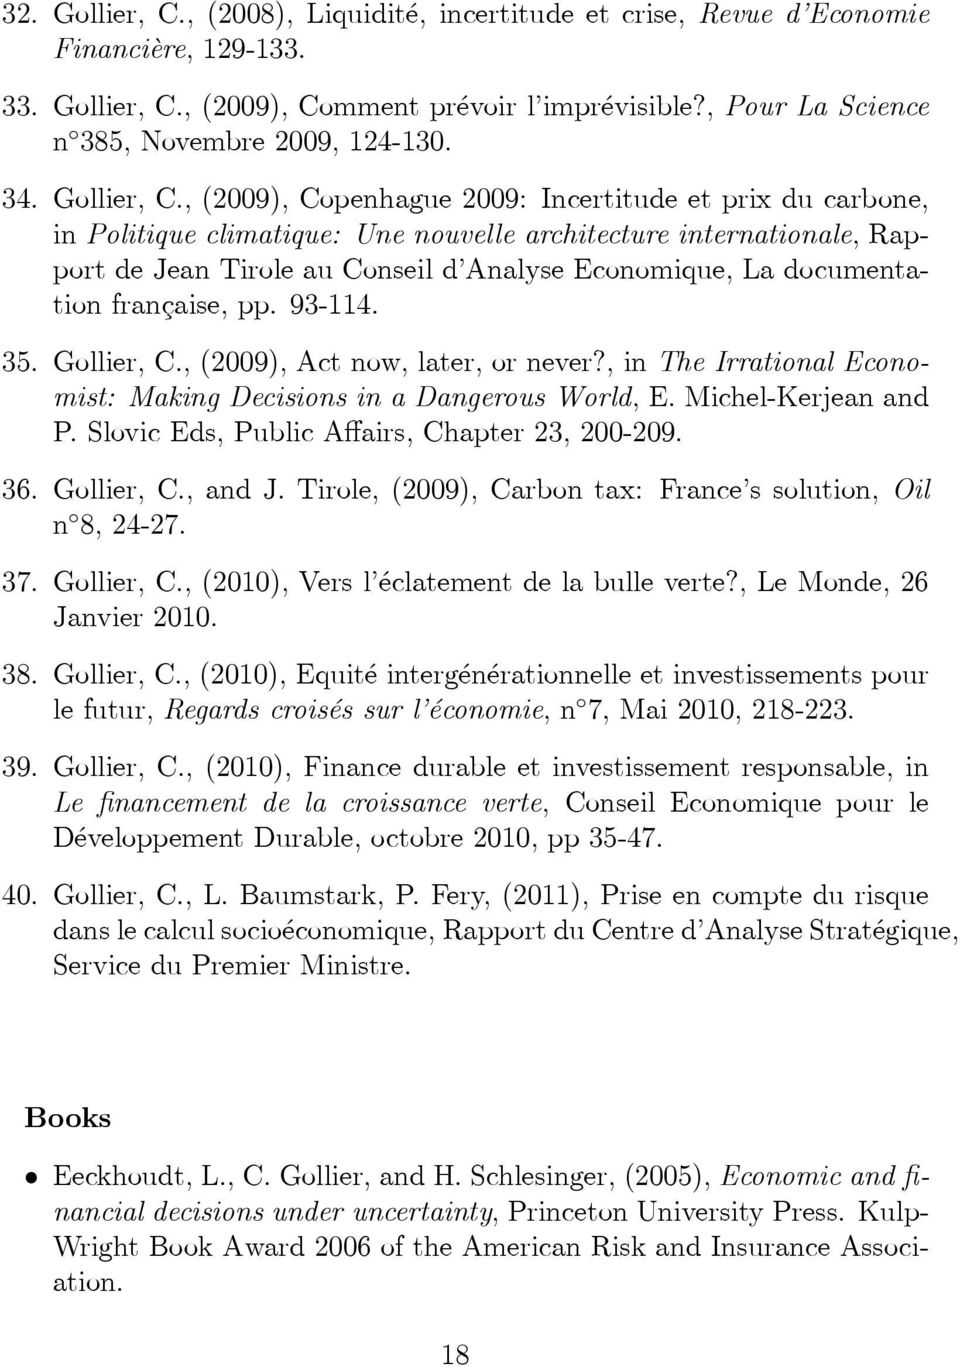 , (2009), Copenhague 2009: Incertitude et prix du carbone, in Politique climatique: Une nouvelle architecture internationale, Rapport de Jean Tirole au Conseil d Analyse Economique, La documentation